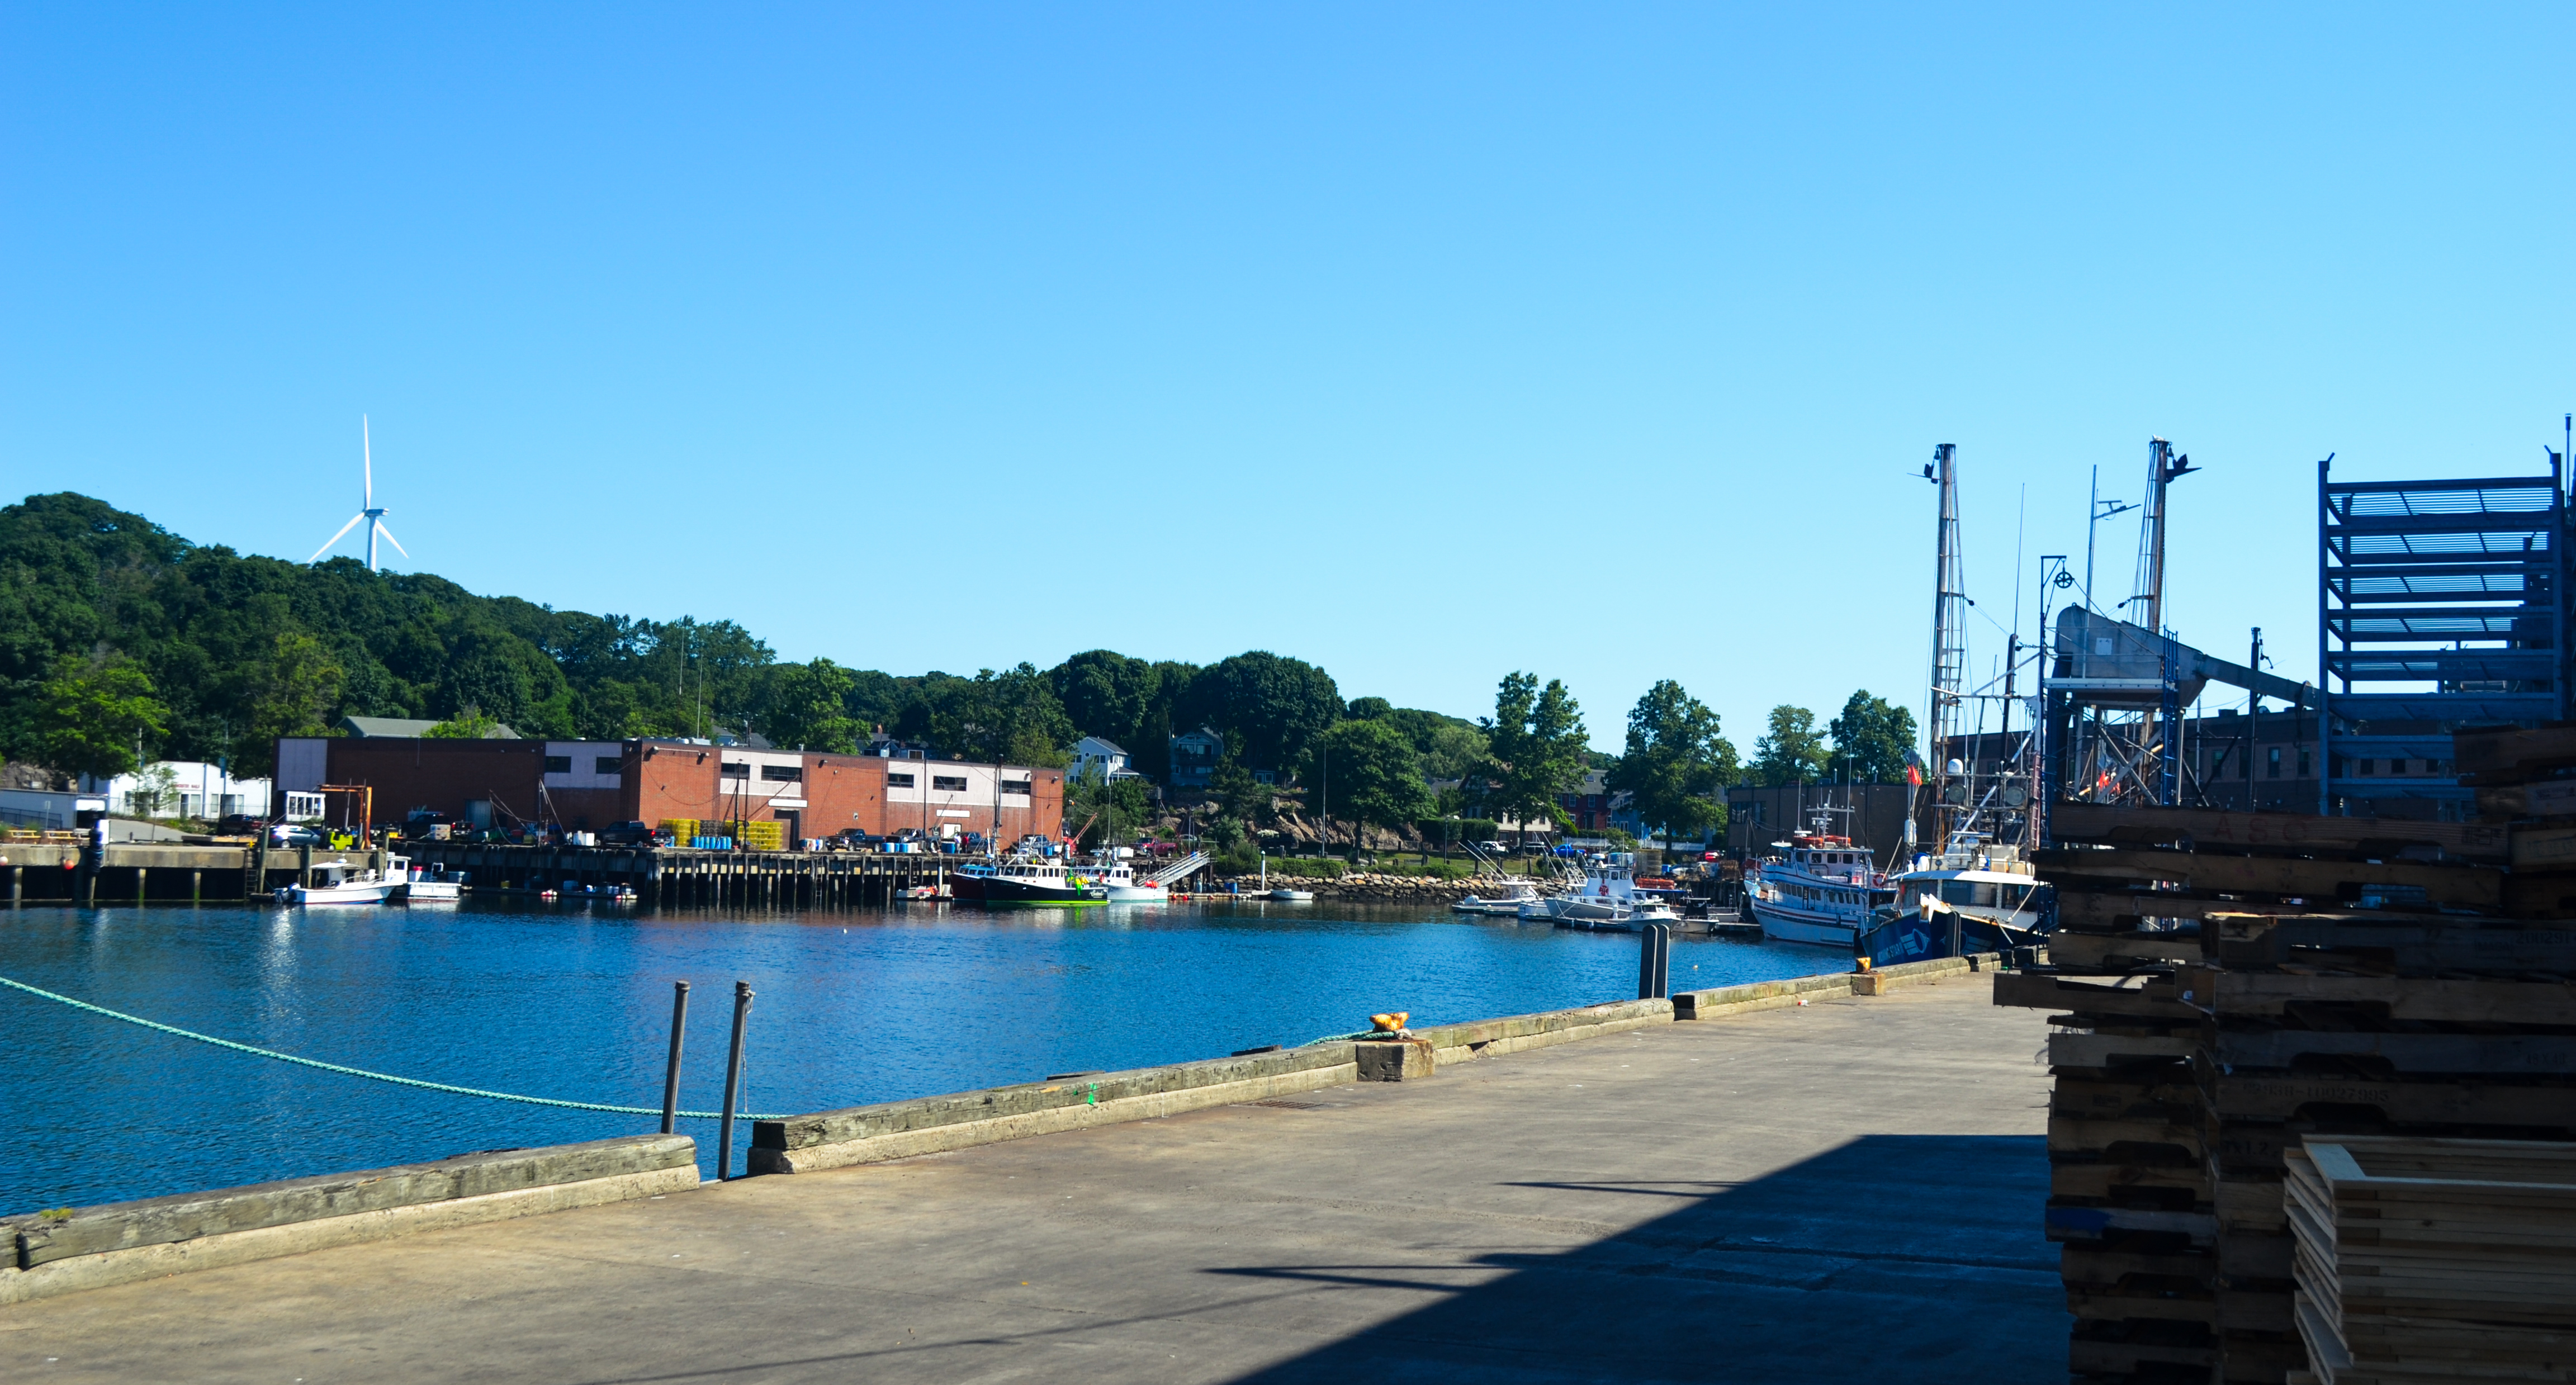 The port of Gloucester